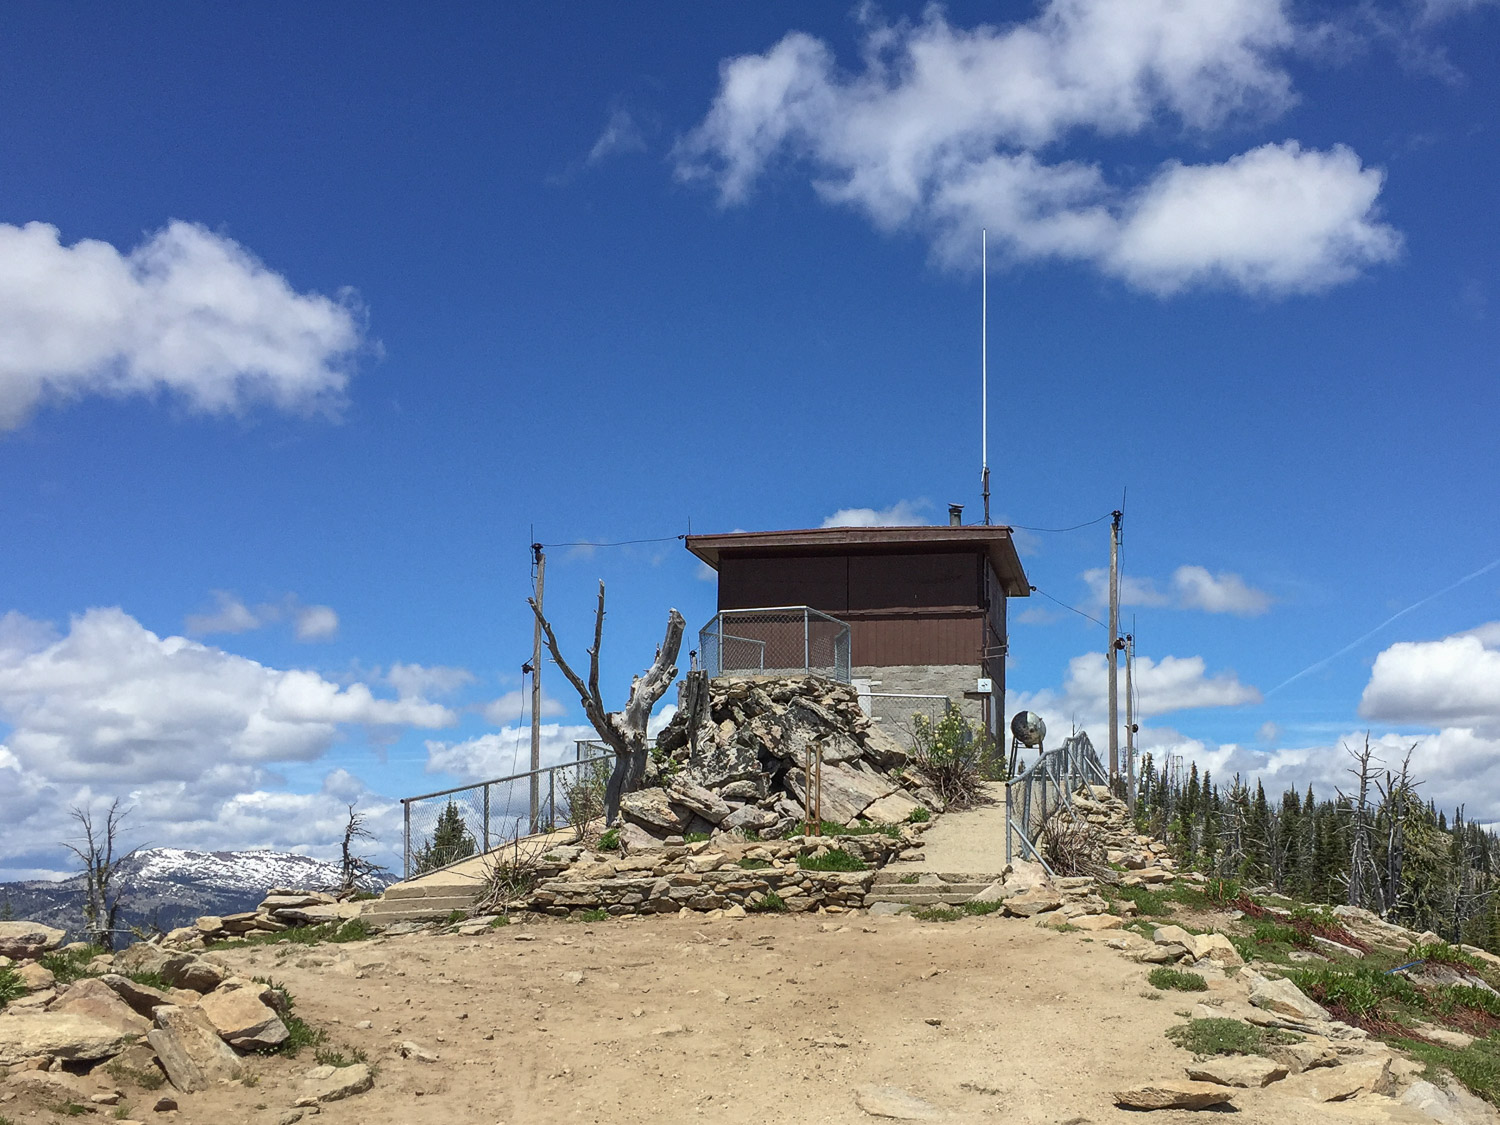 Brundage Mountain lookout.